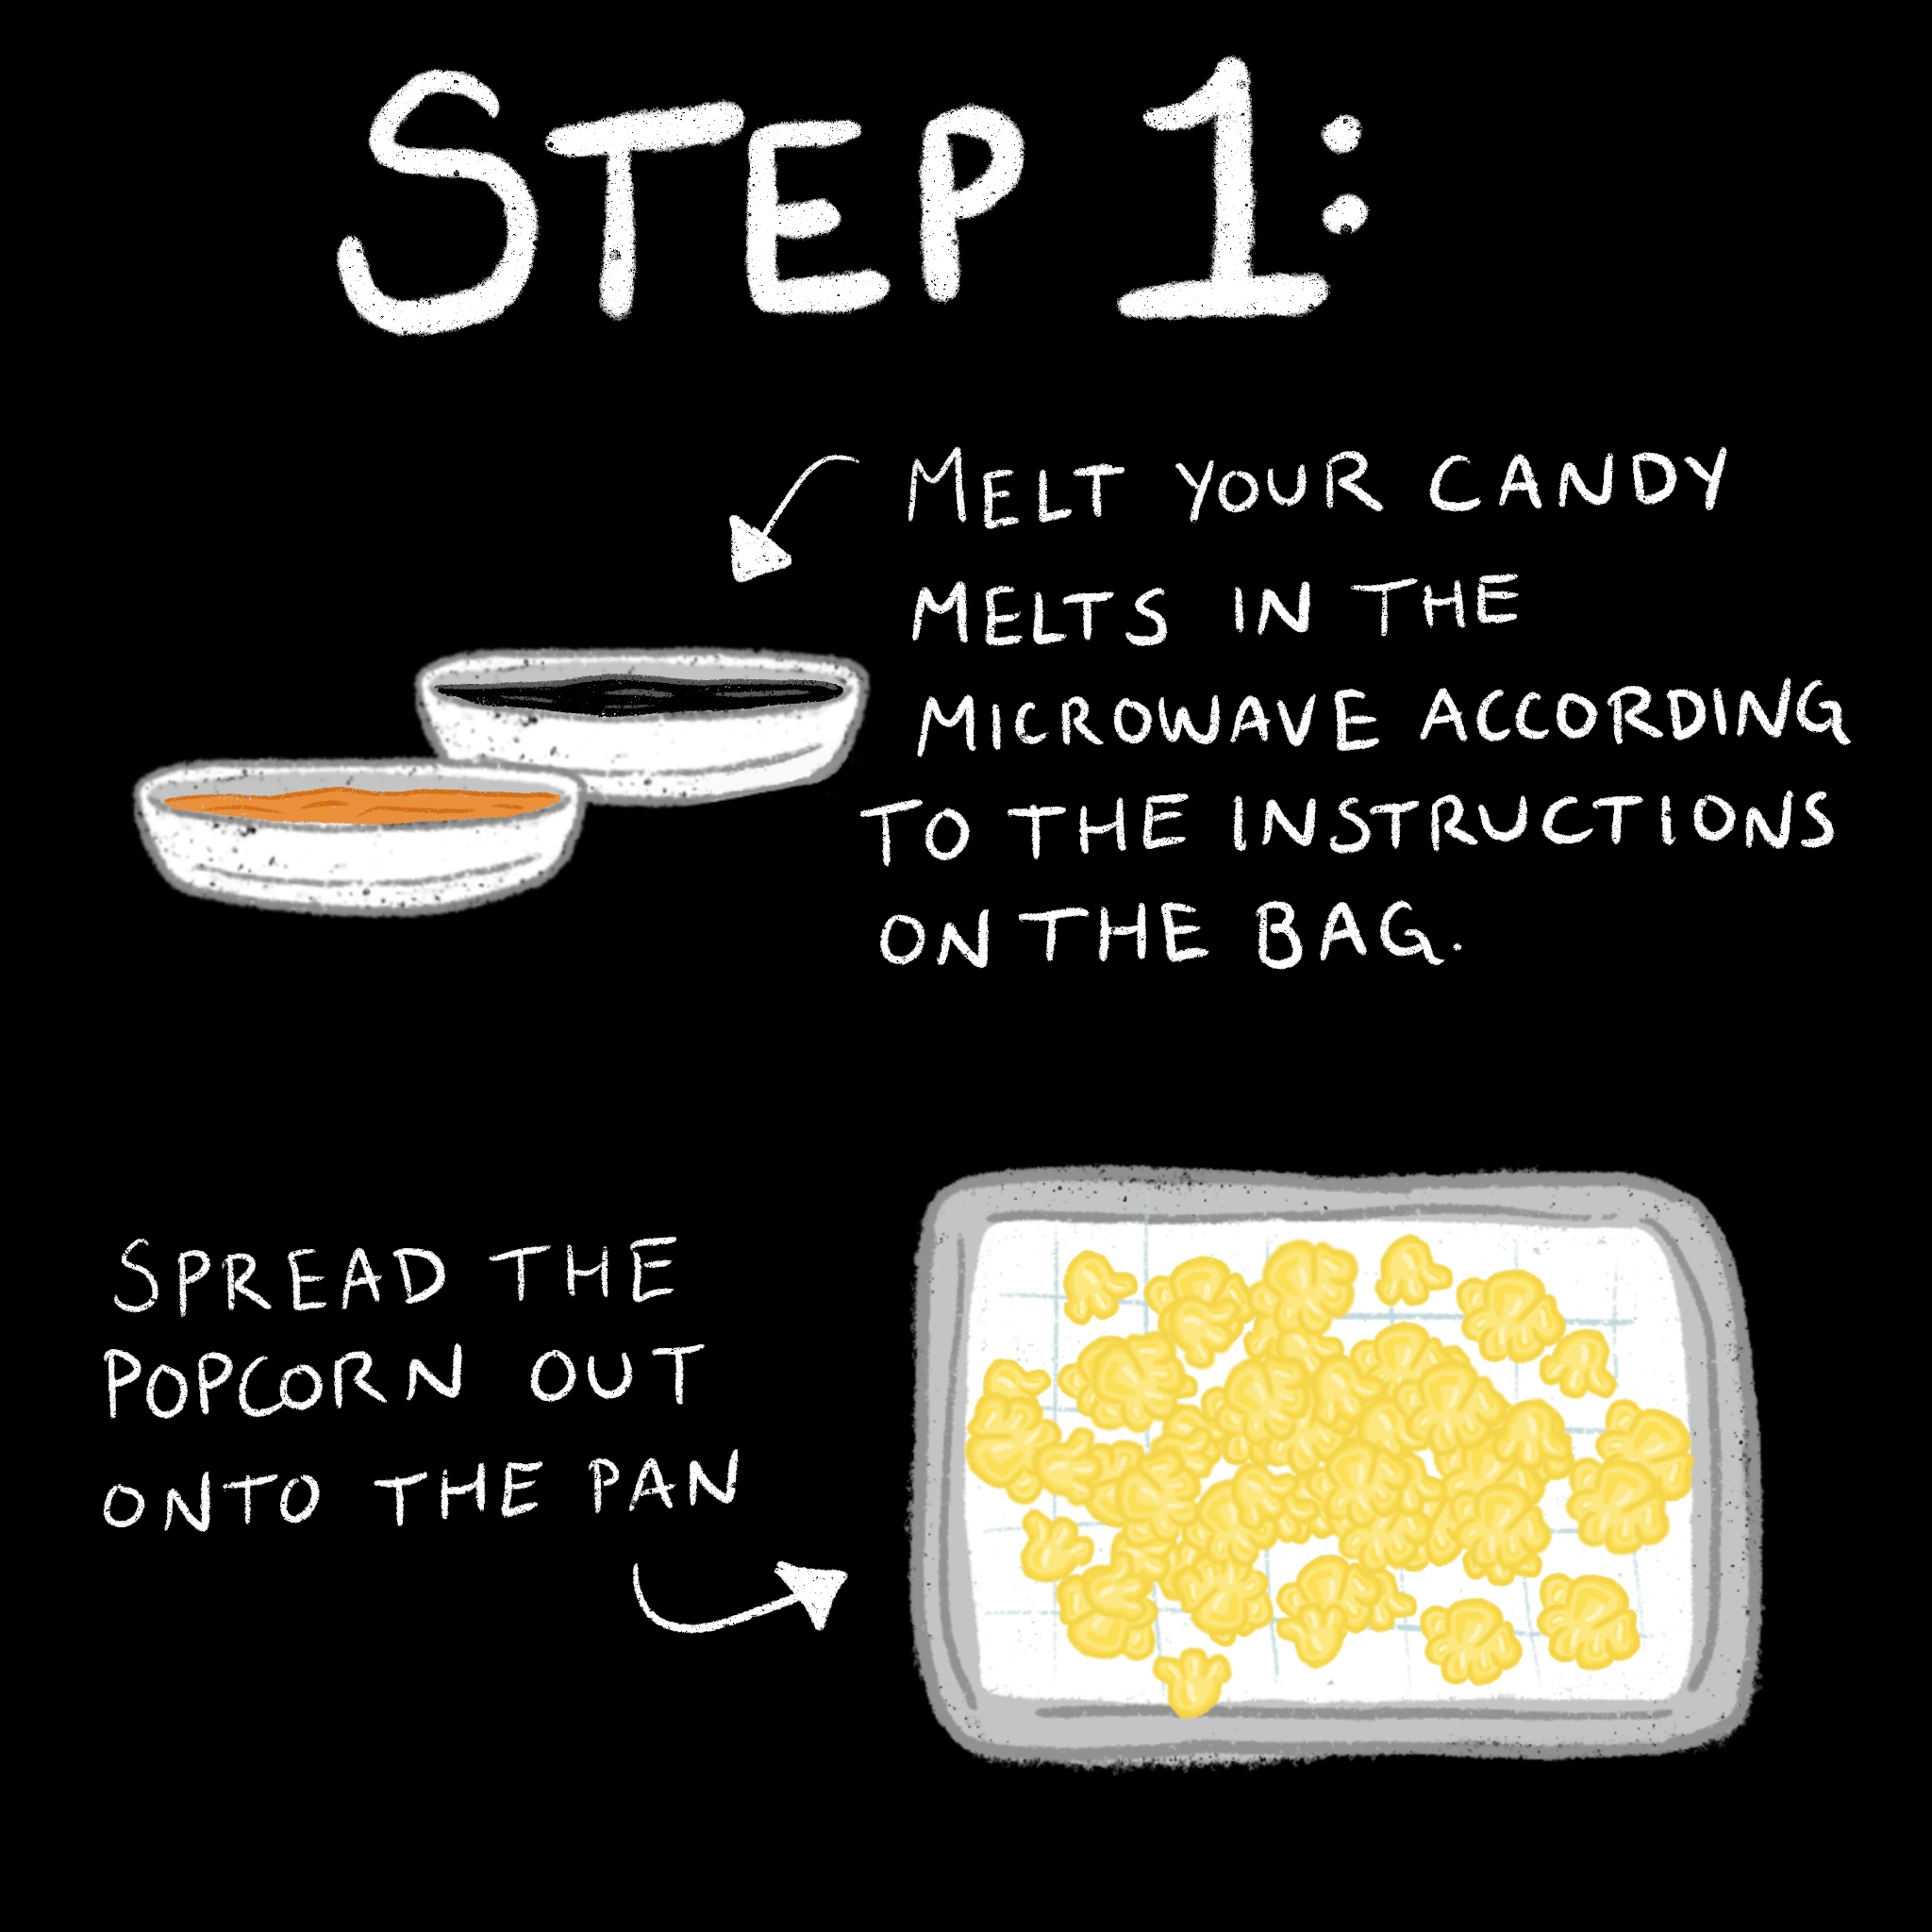 step one: melt your candy melts in microwave according to the instruction on the bag. Spread the popcorn out onto the pan